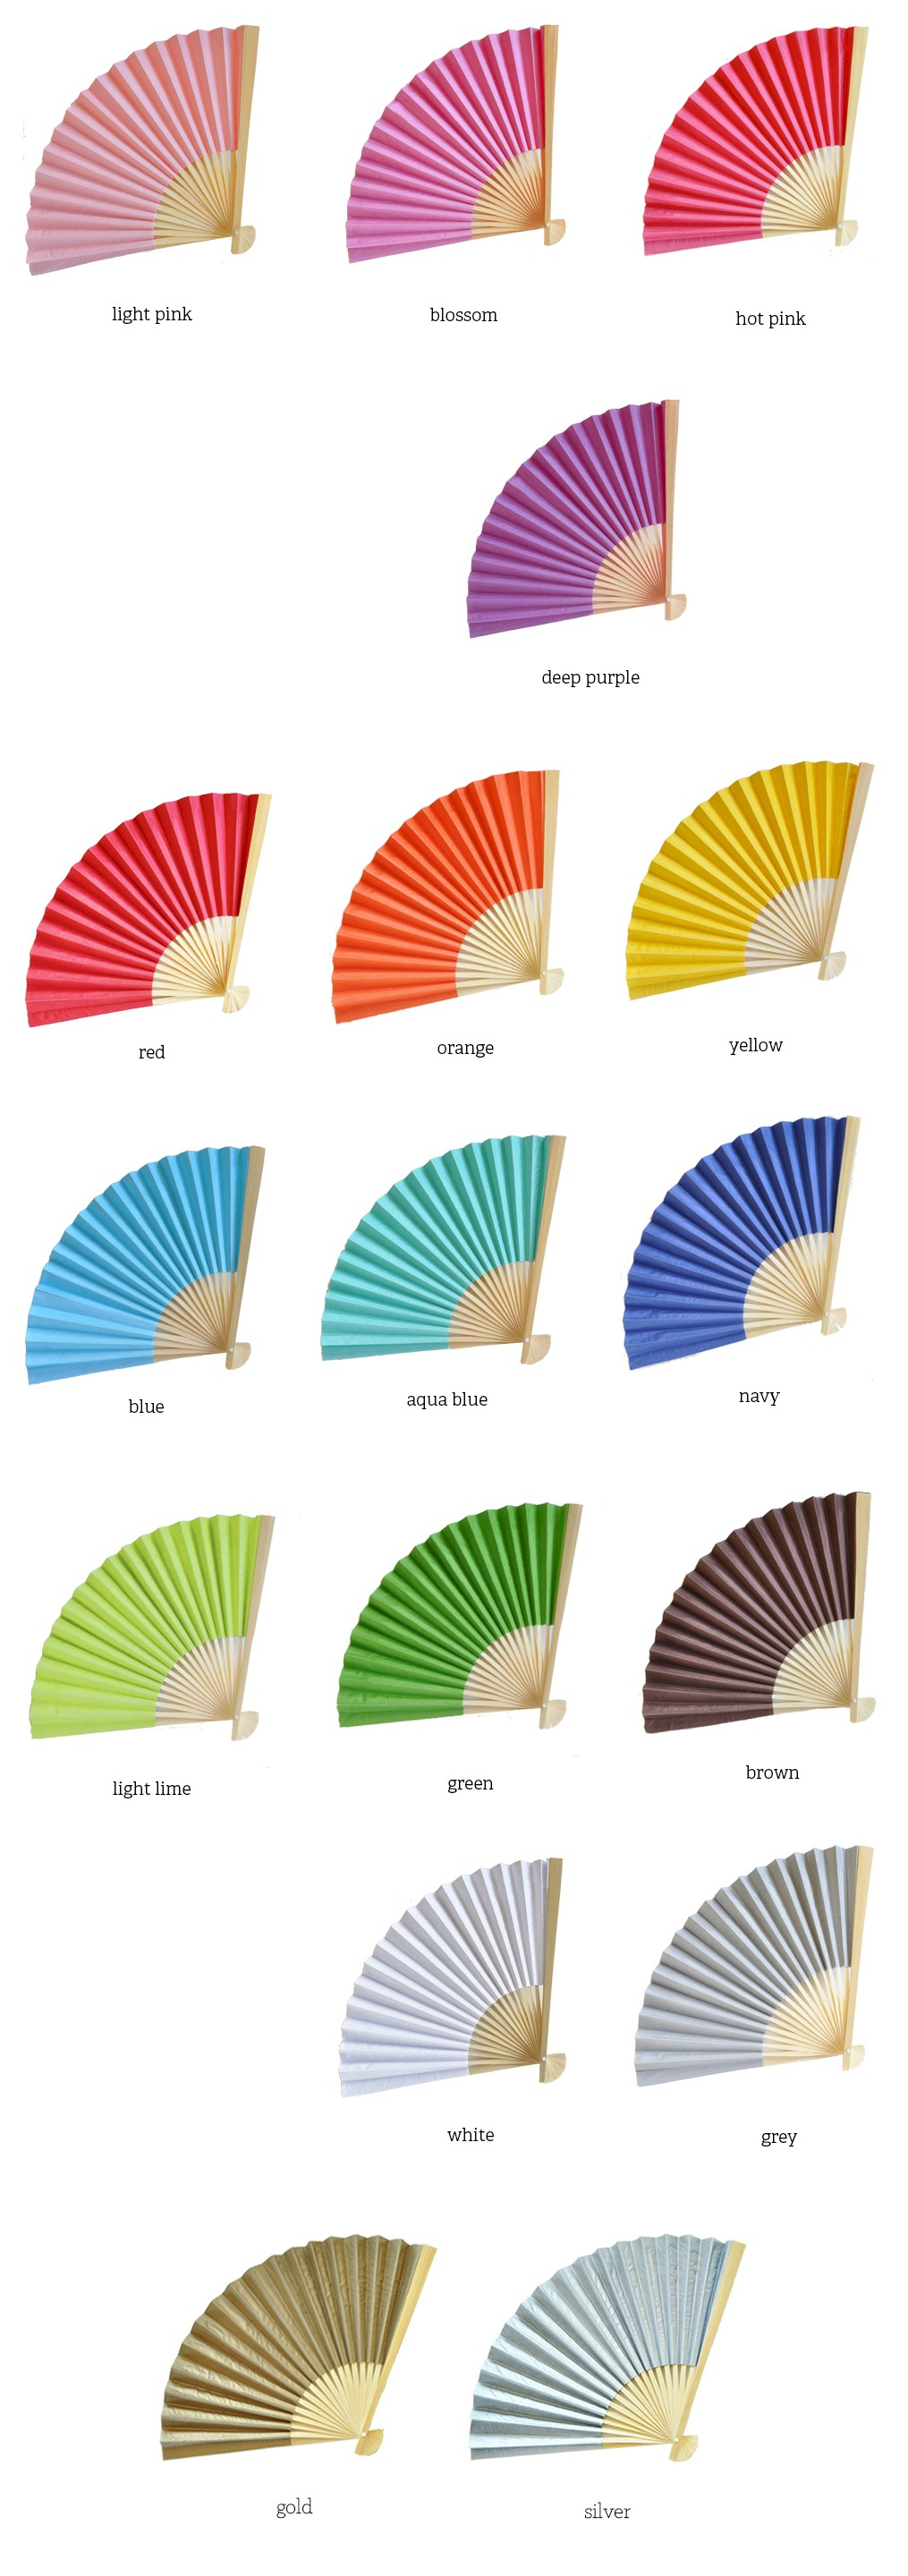 Personalized Paper Fans With Metallic Foil Labels